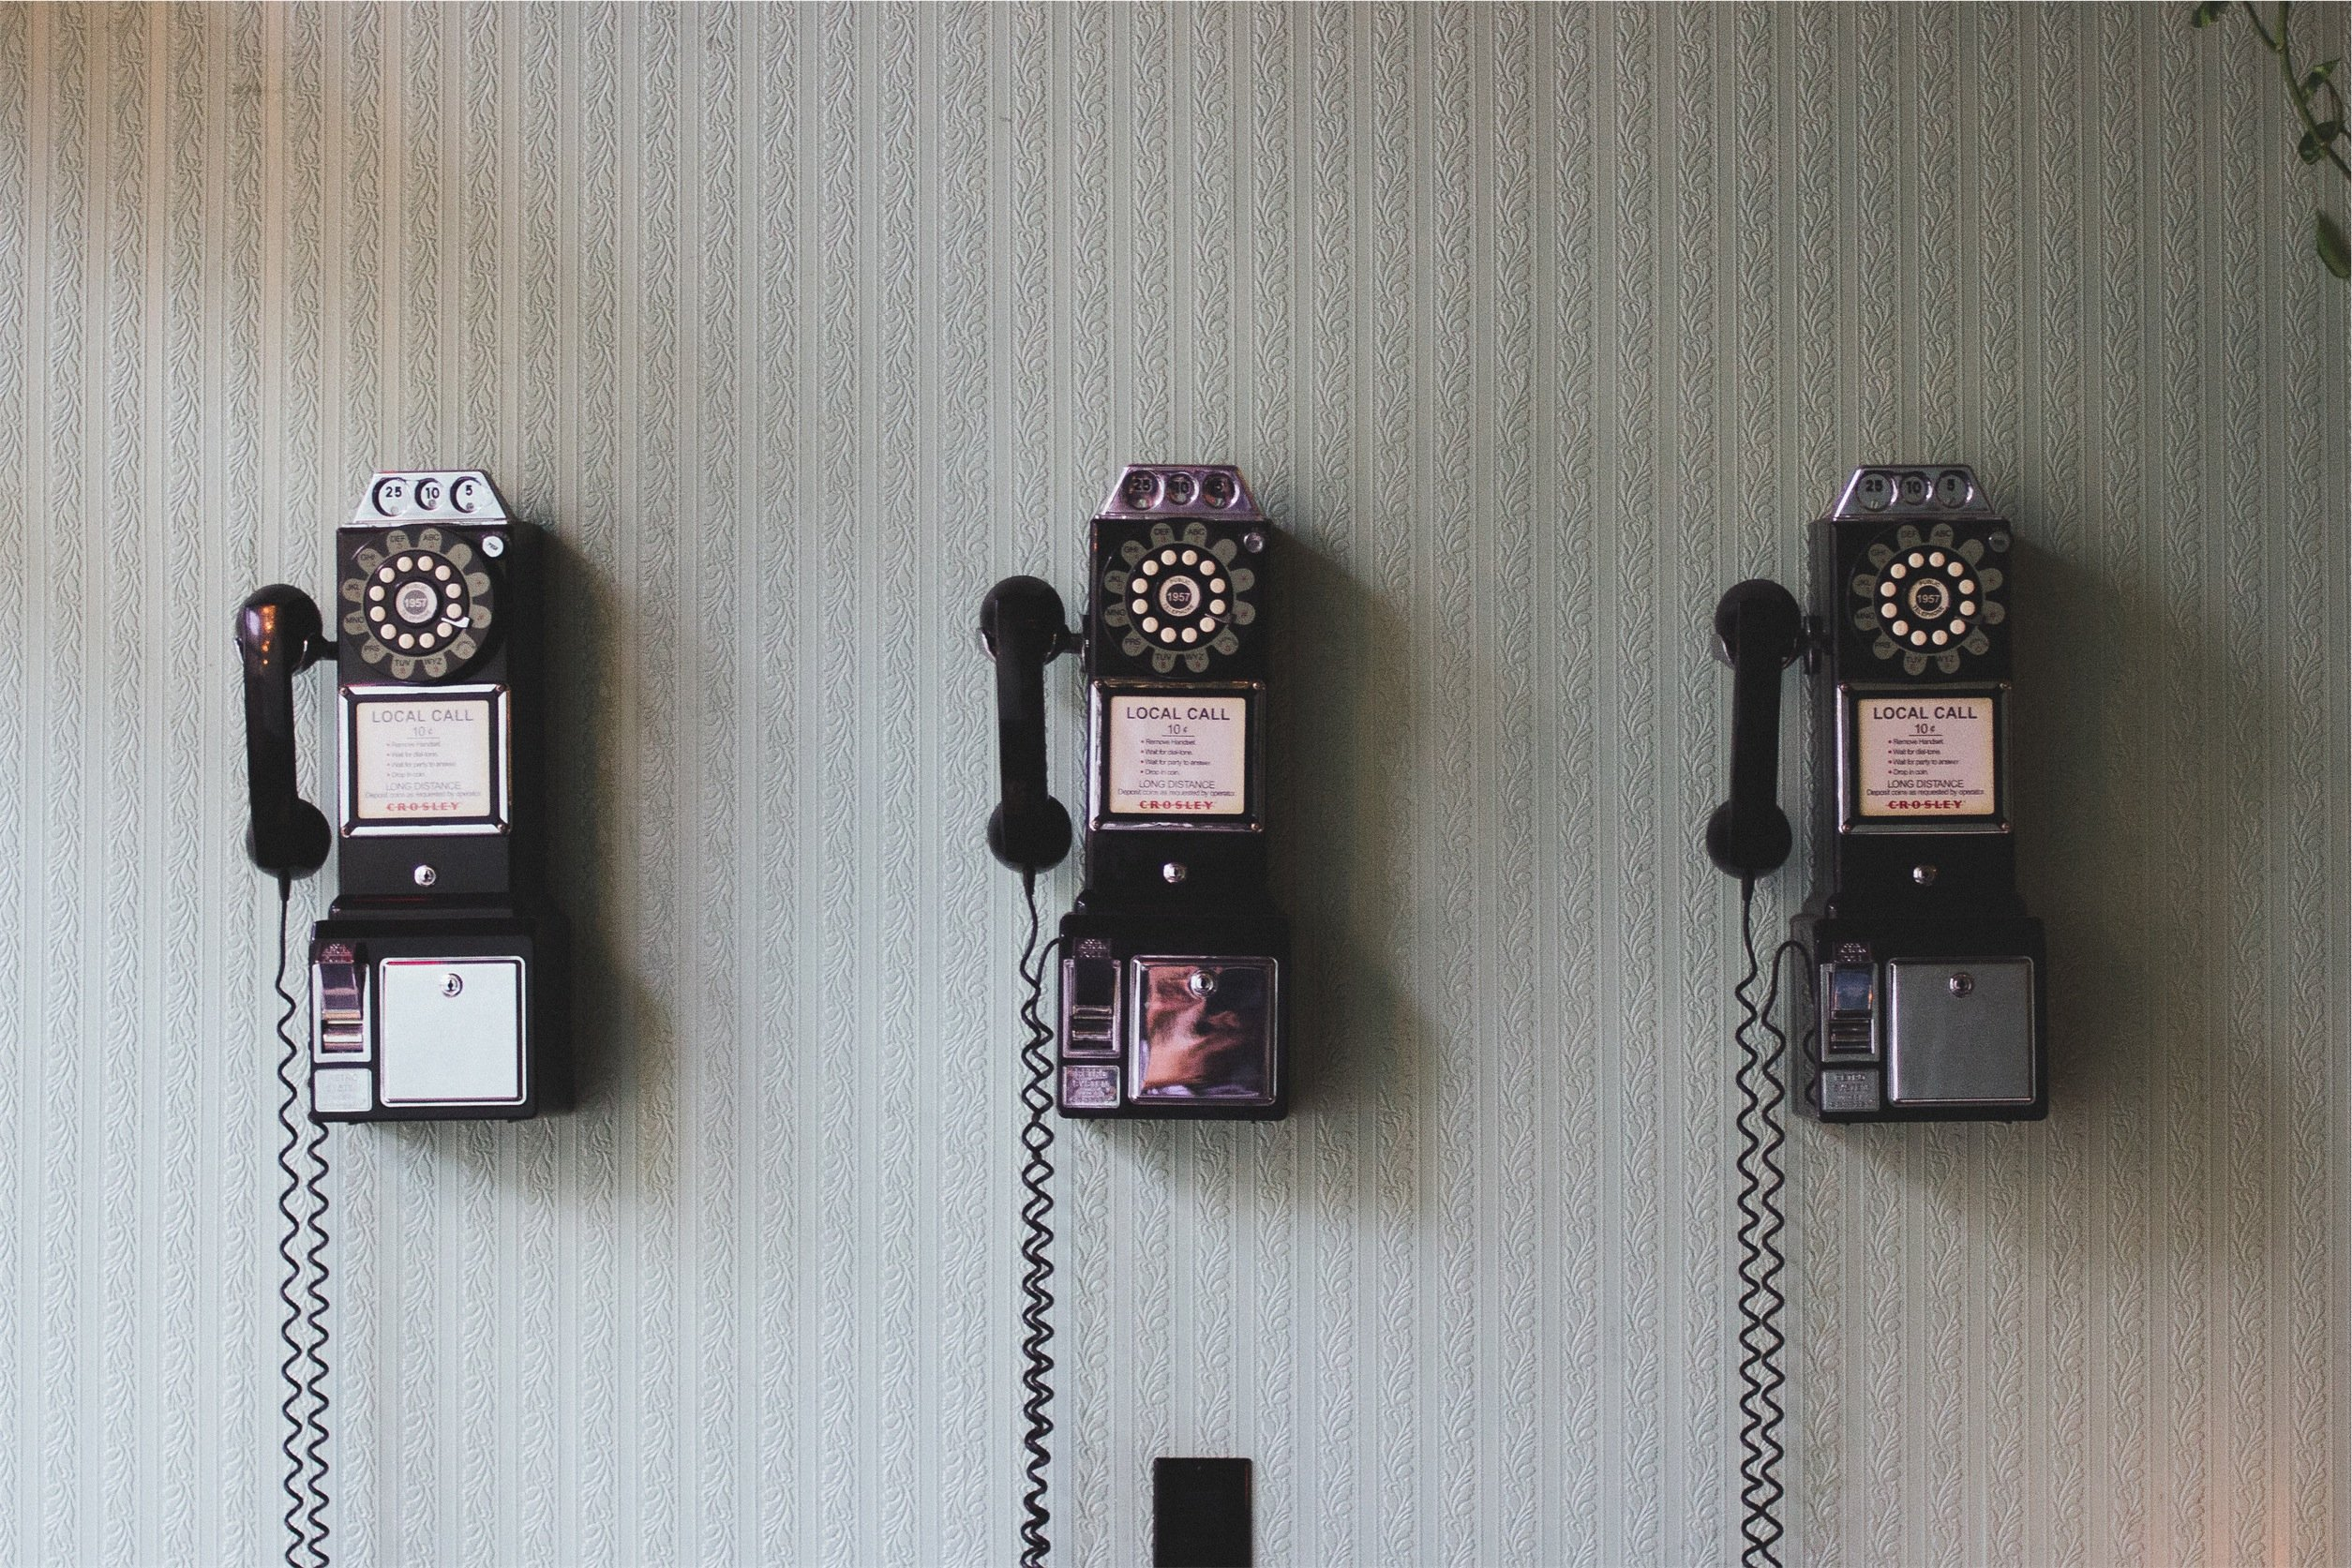 In-house Vs. Outsourced Telemarketing – Which is better?